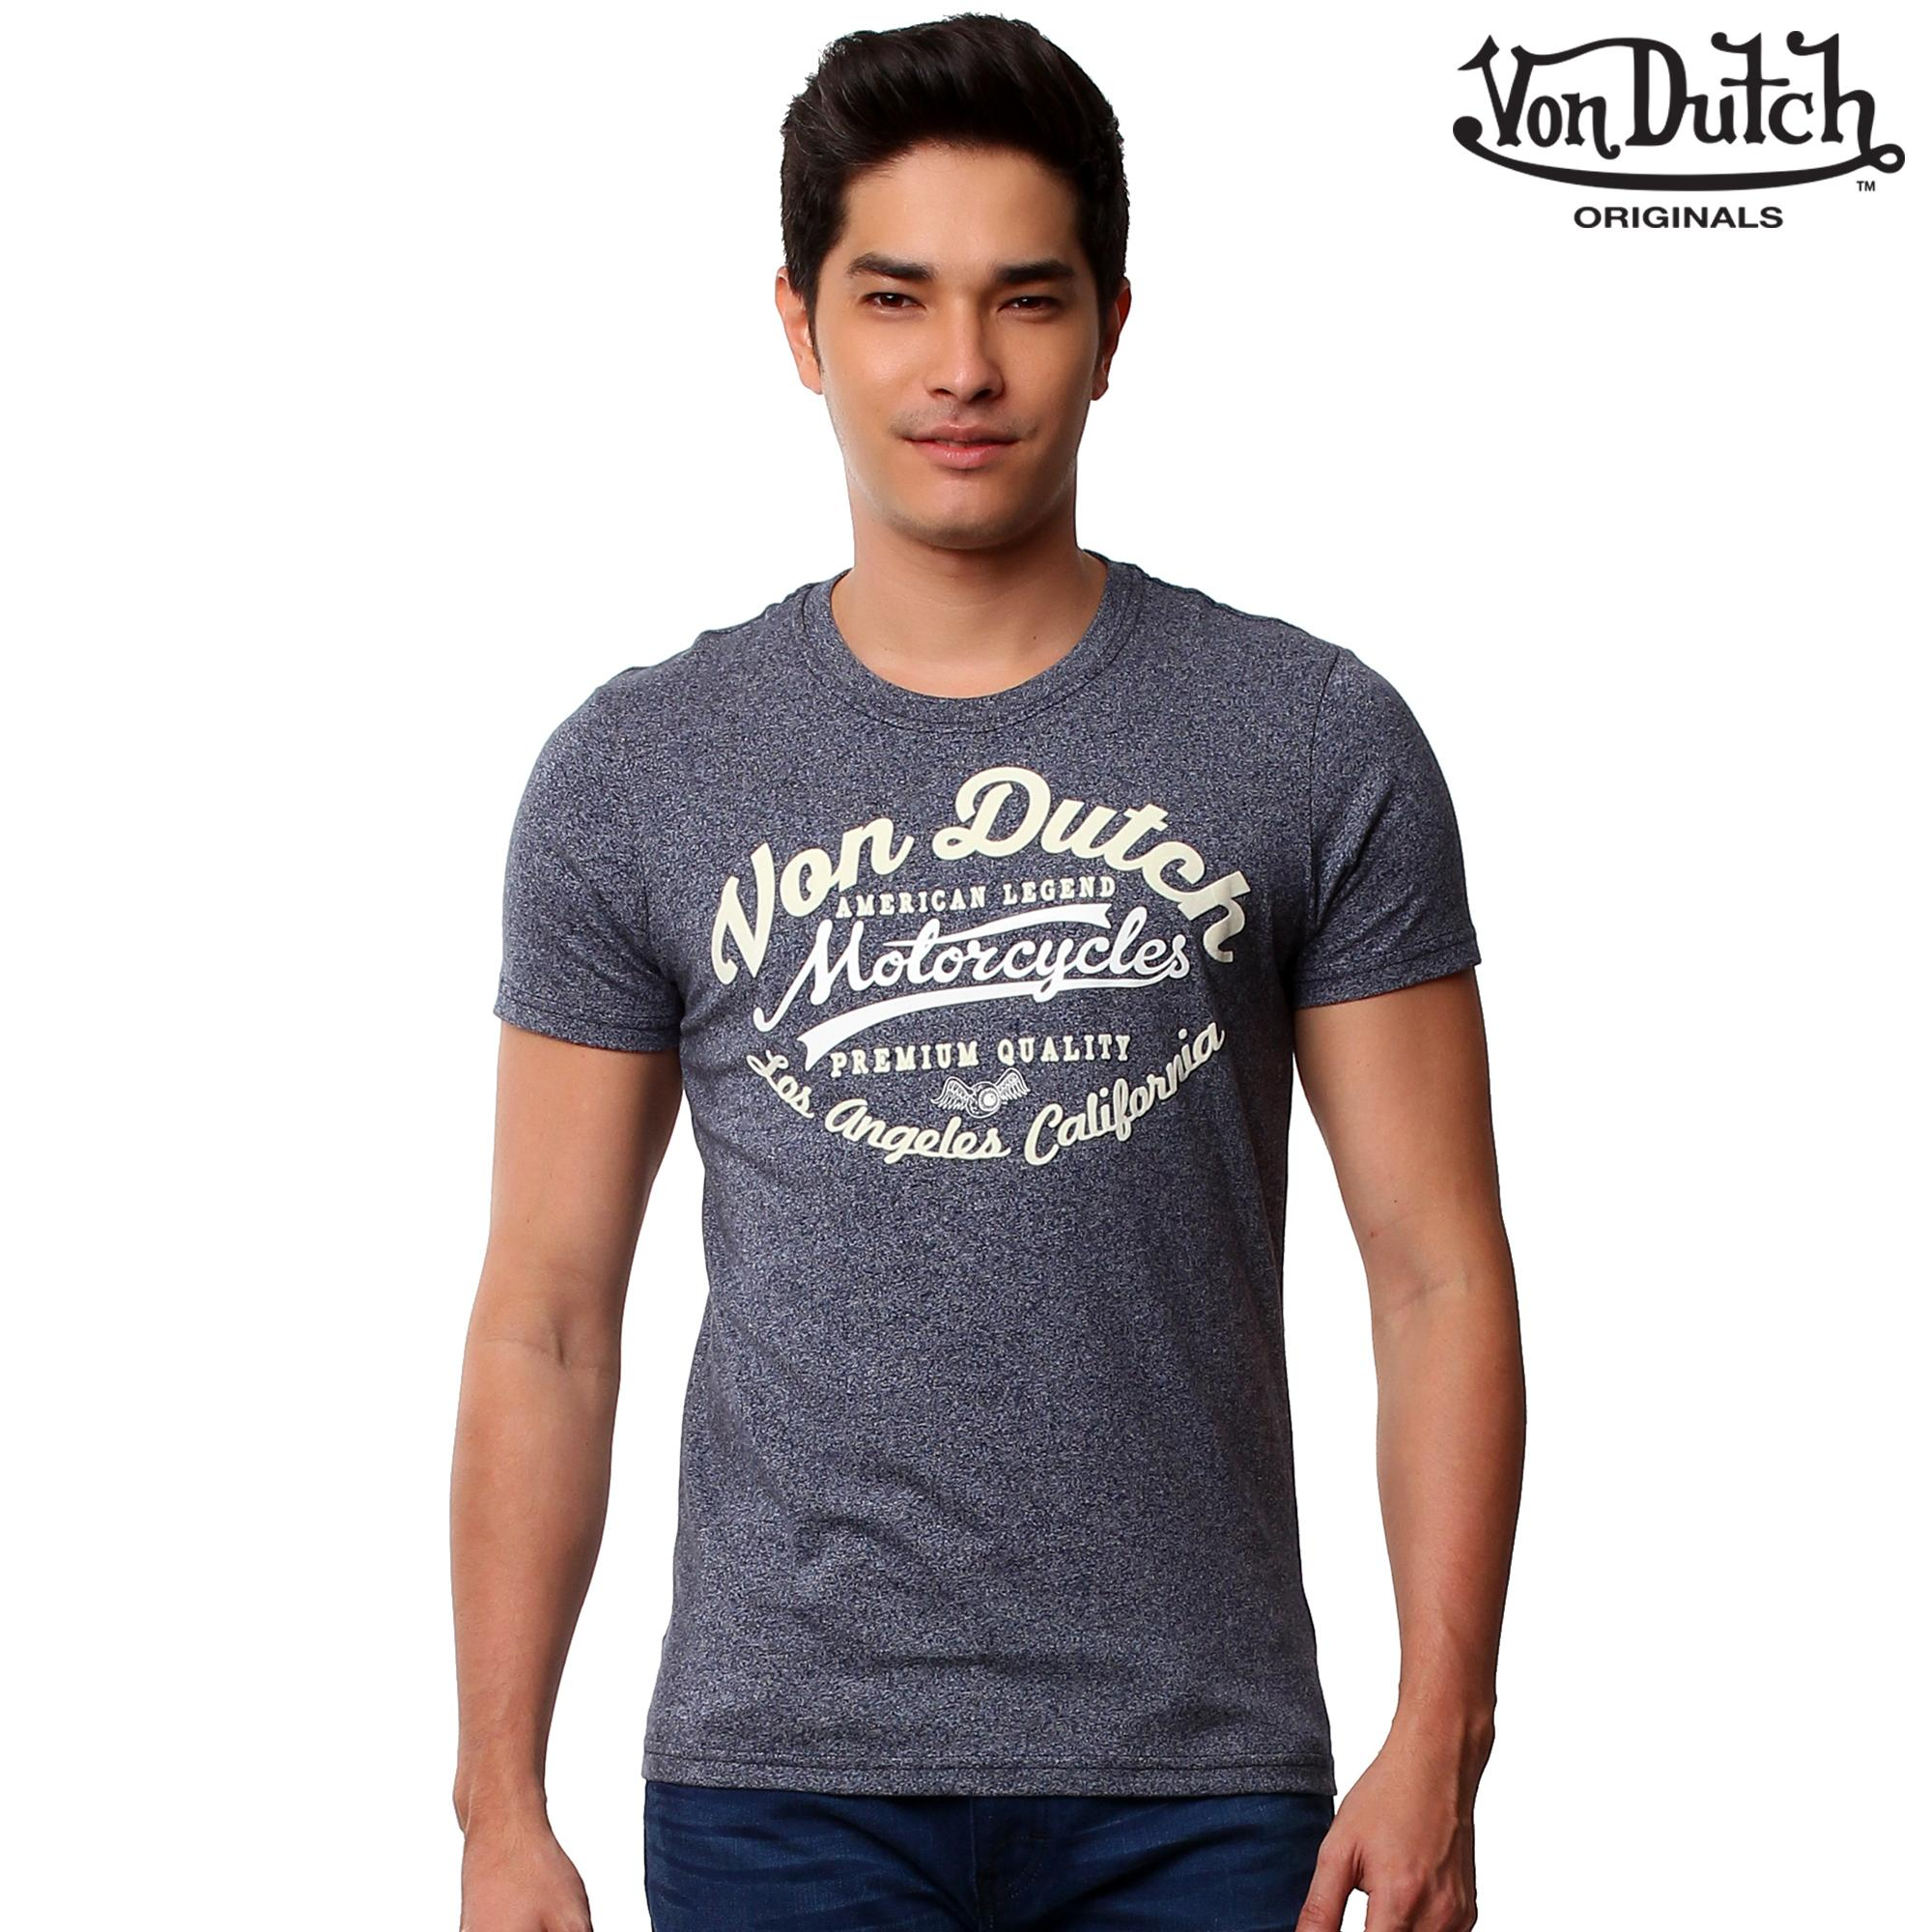 Von Dutch Philippines Von Dutch Price List Von Dutch Fashion